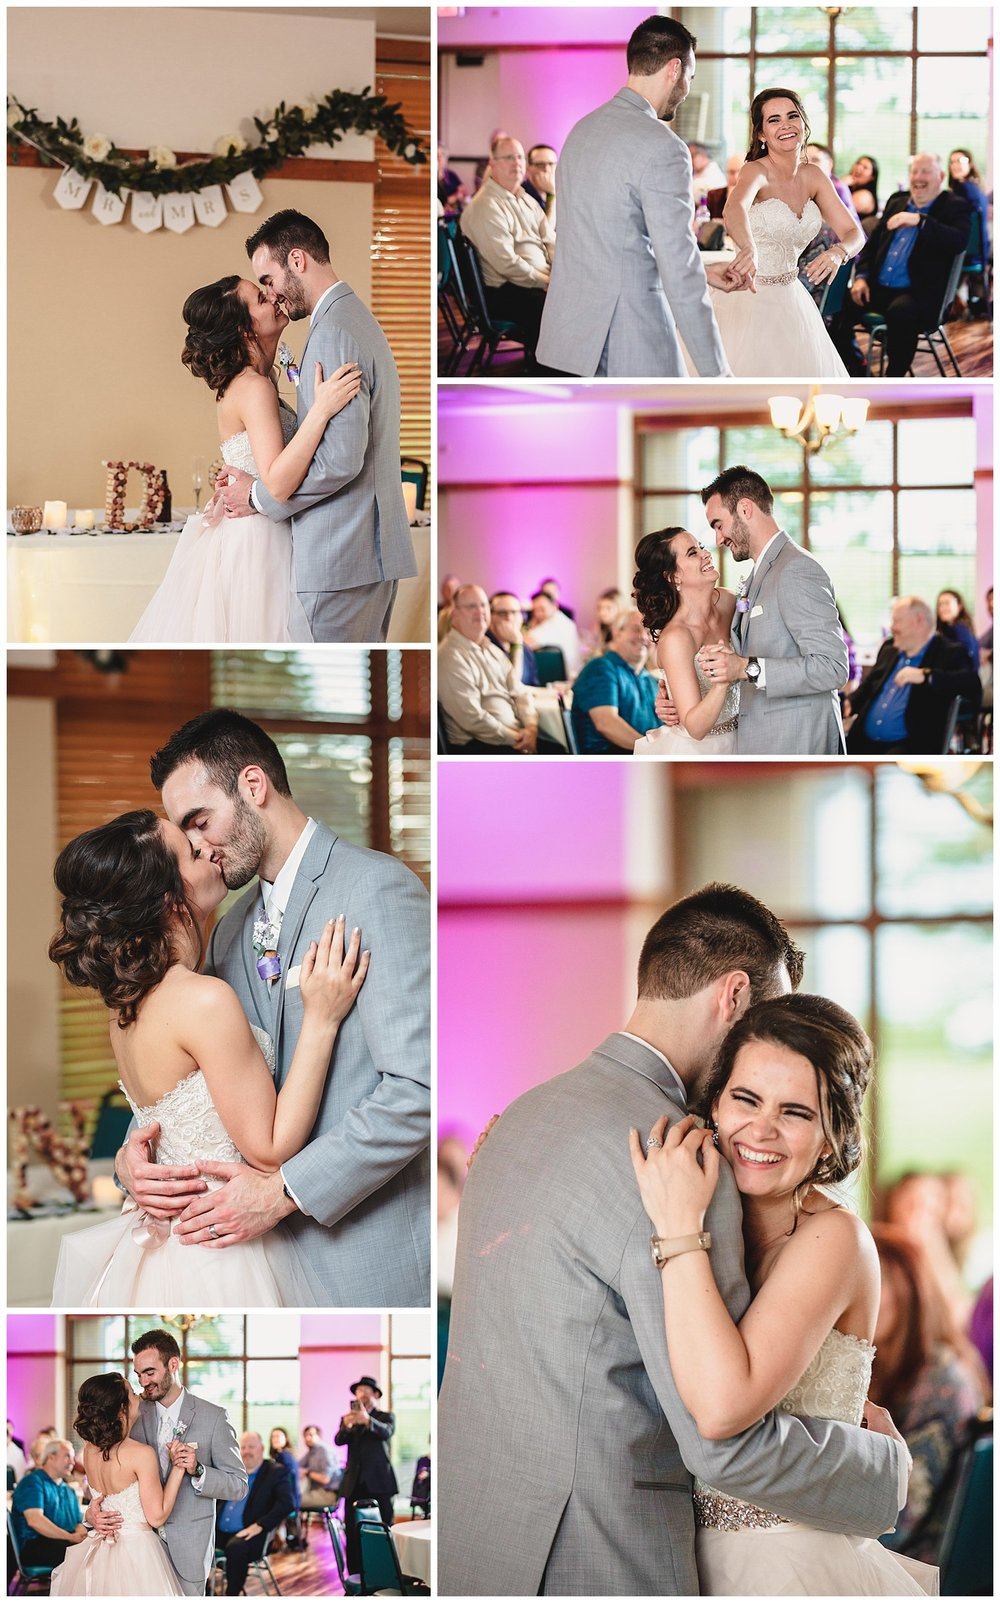 Tiffany_Greens_Golf_Club_Kansas_City_Wedding_Nikki_David_Spring_Wedding_Kelsey_Diane_Photography_0077.jpg